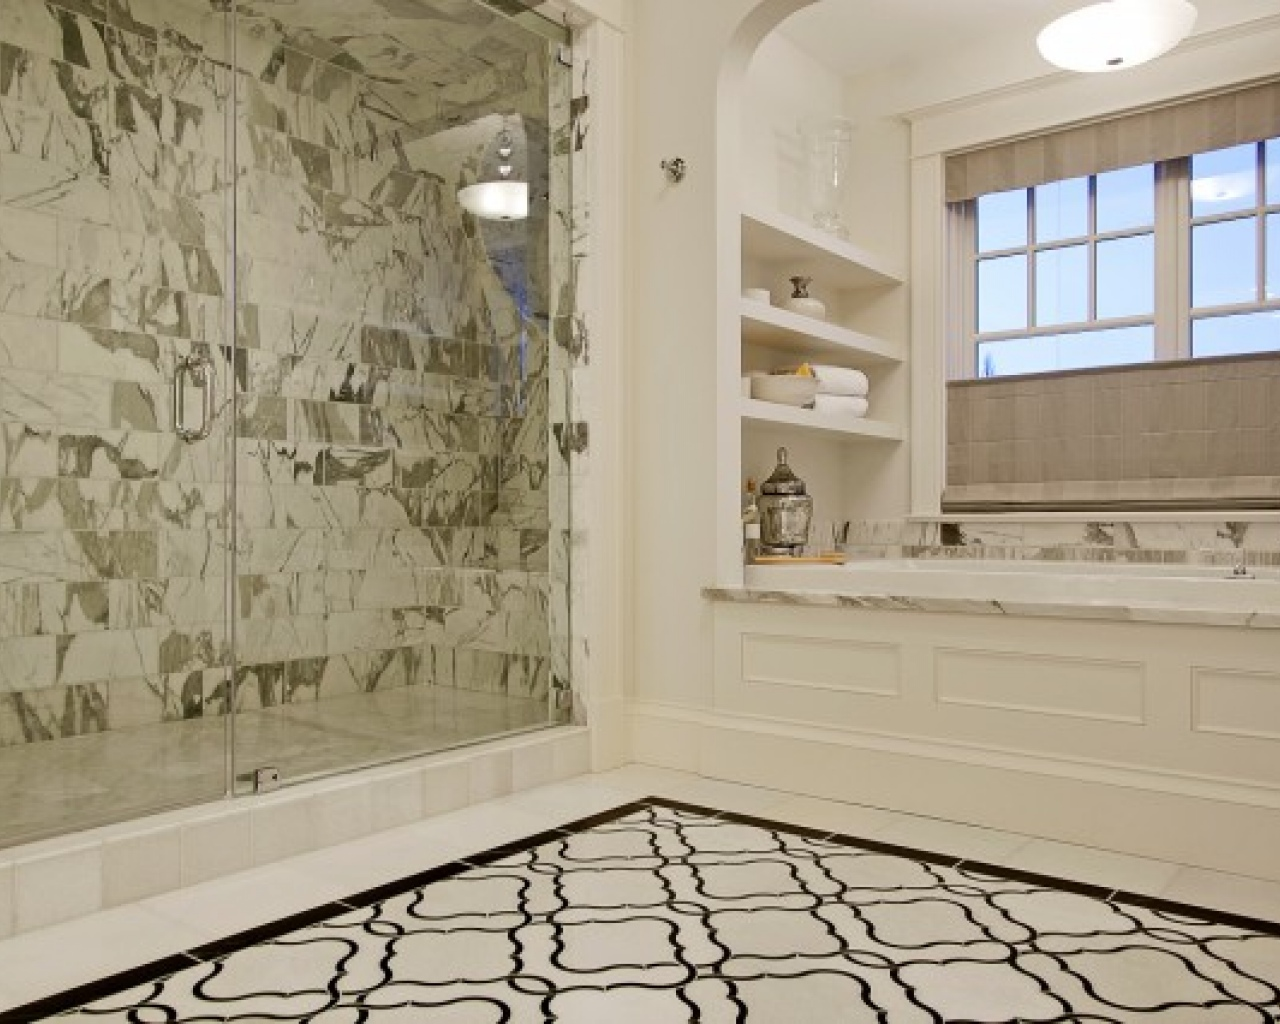 30 great pictures and ideas basketweave bathroom floor tile Bathroom design ideas with marble